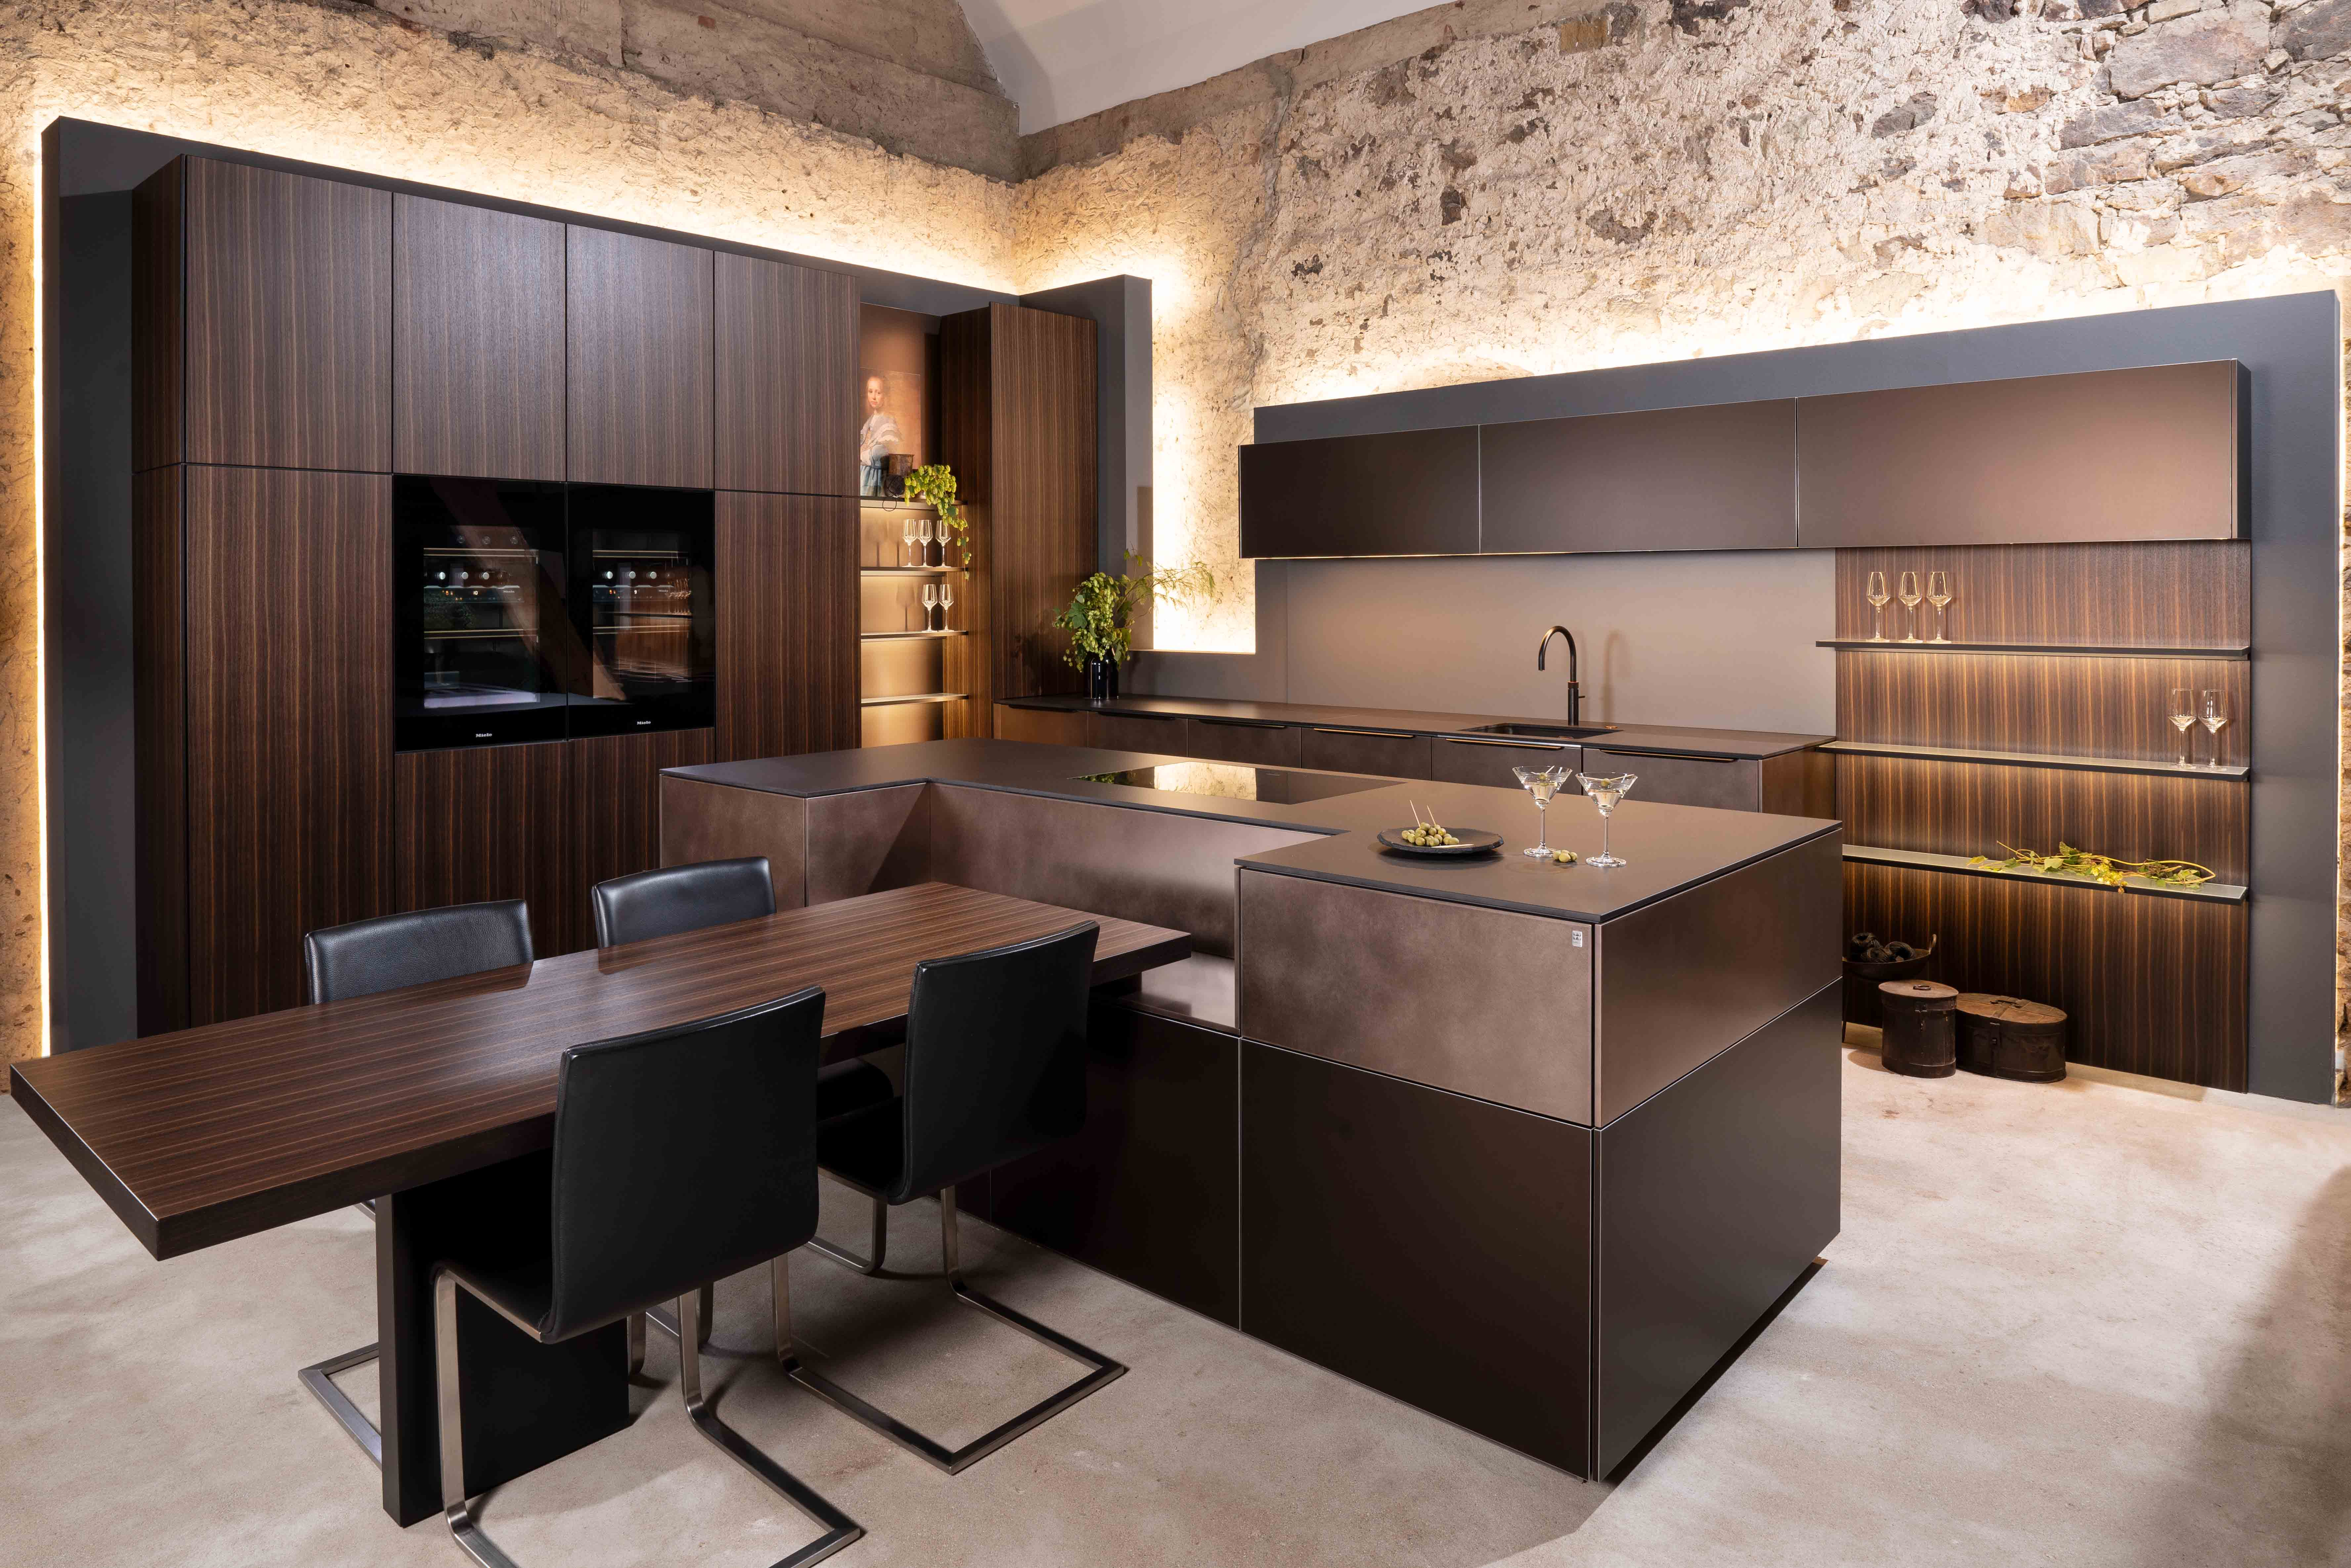 New Warendorf Club K Milieu Kitchen at Sheths Interiors